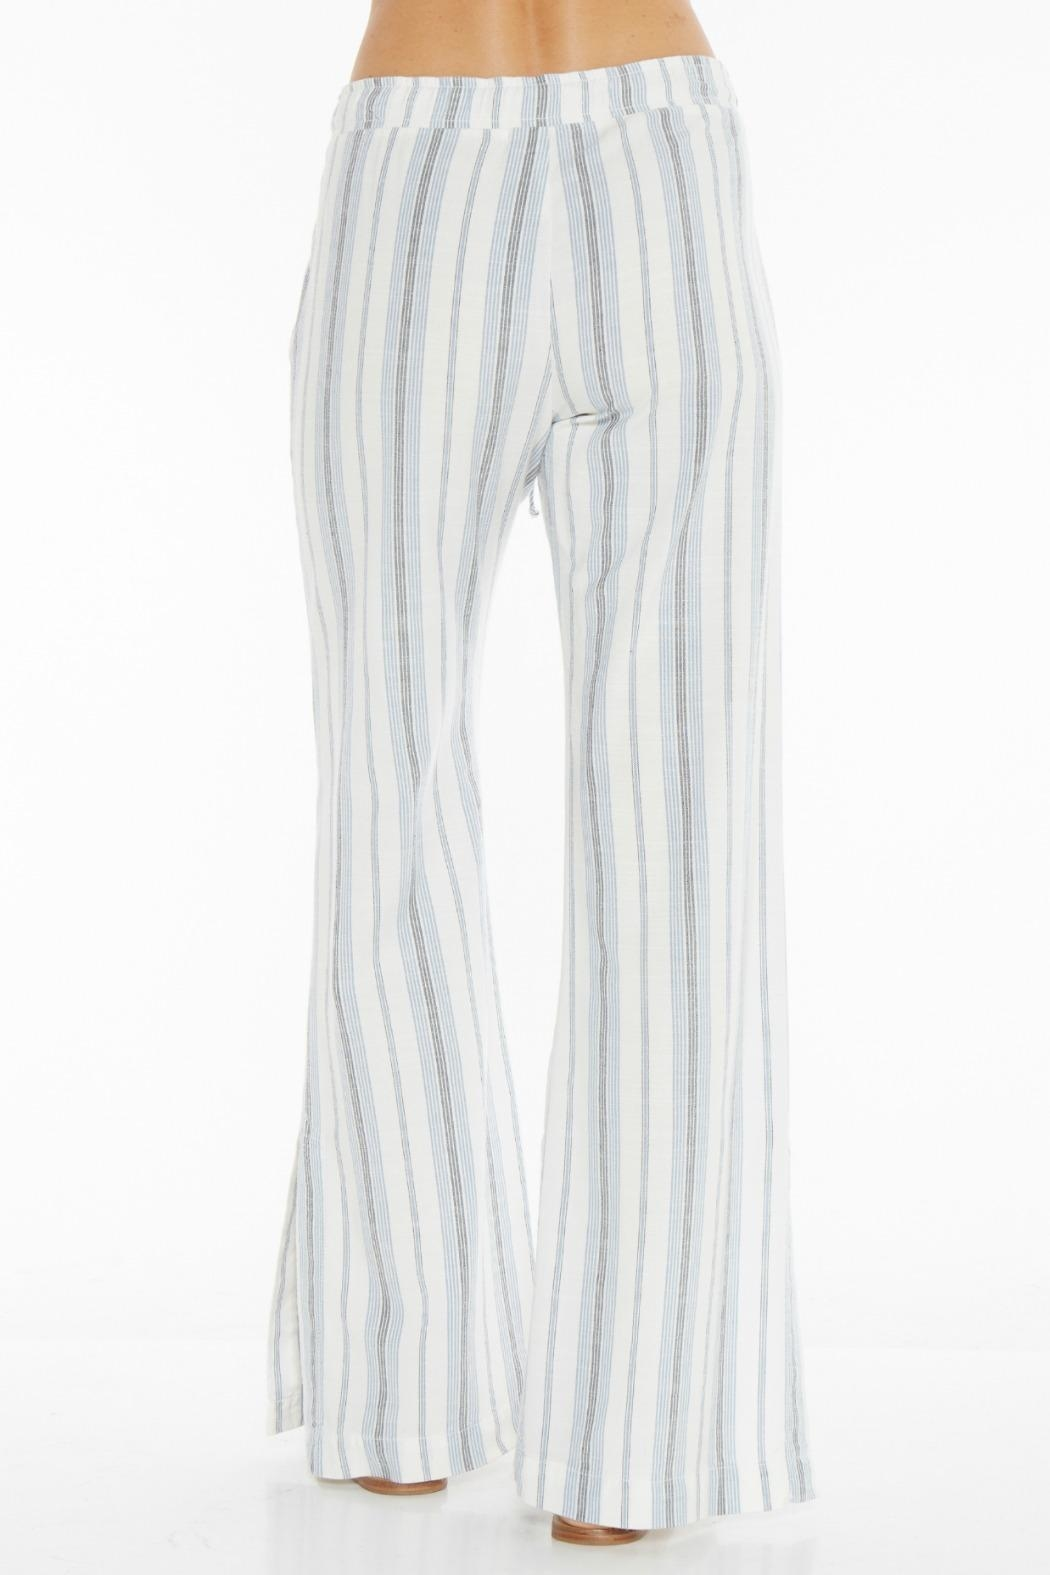 Bella Dahl Side Slit Pant - Side Cropped Image